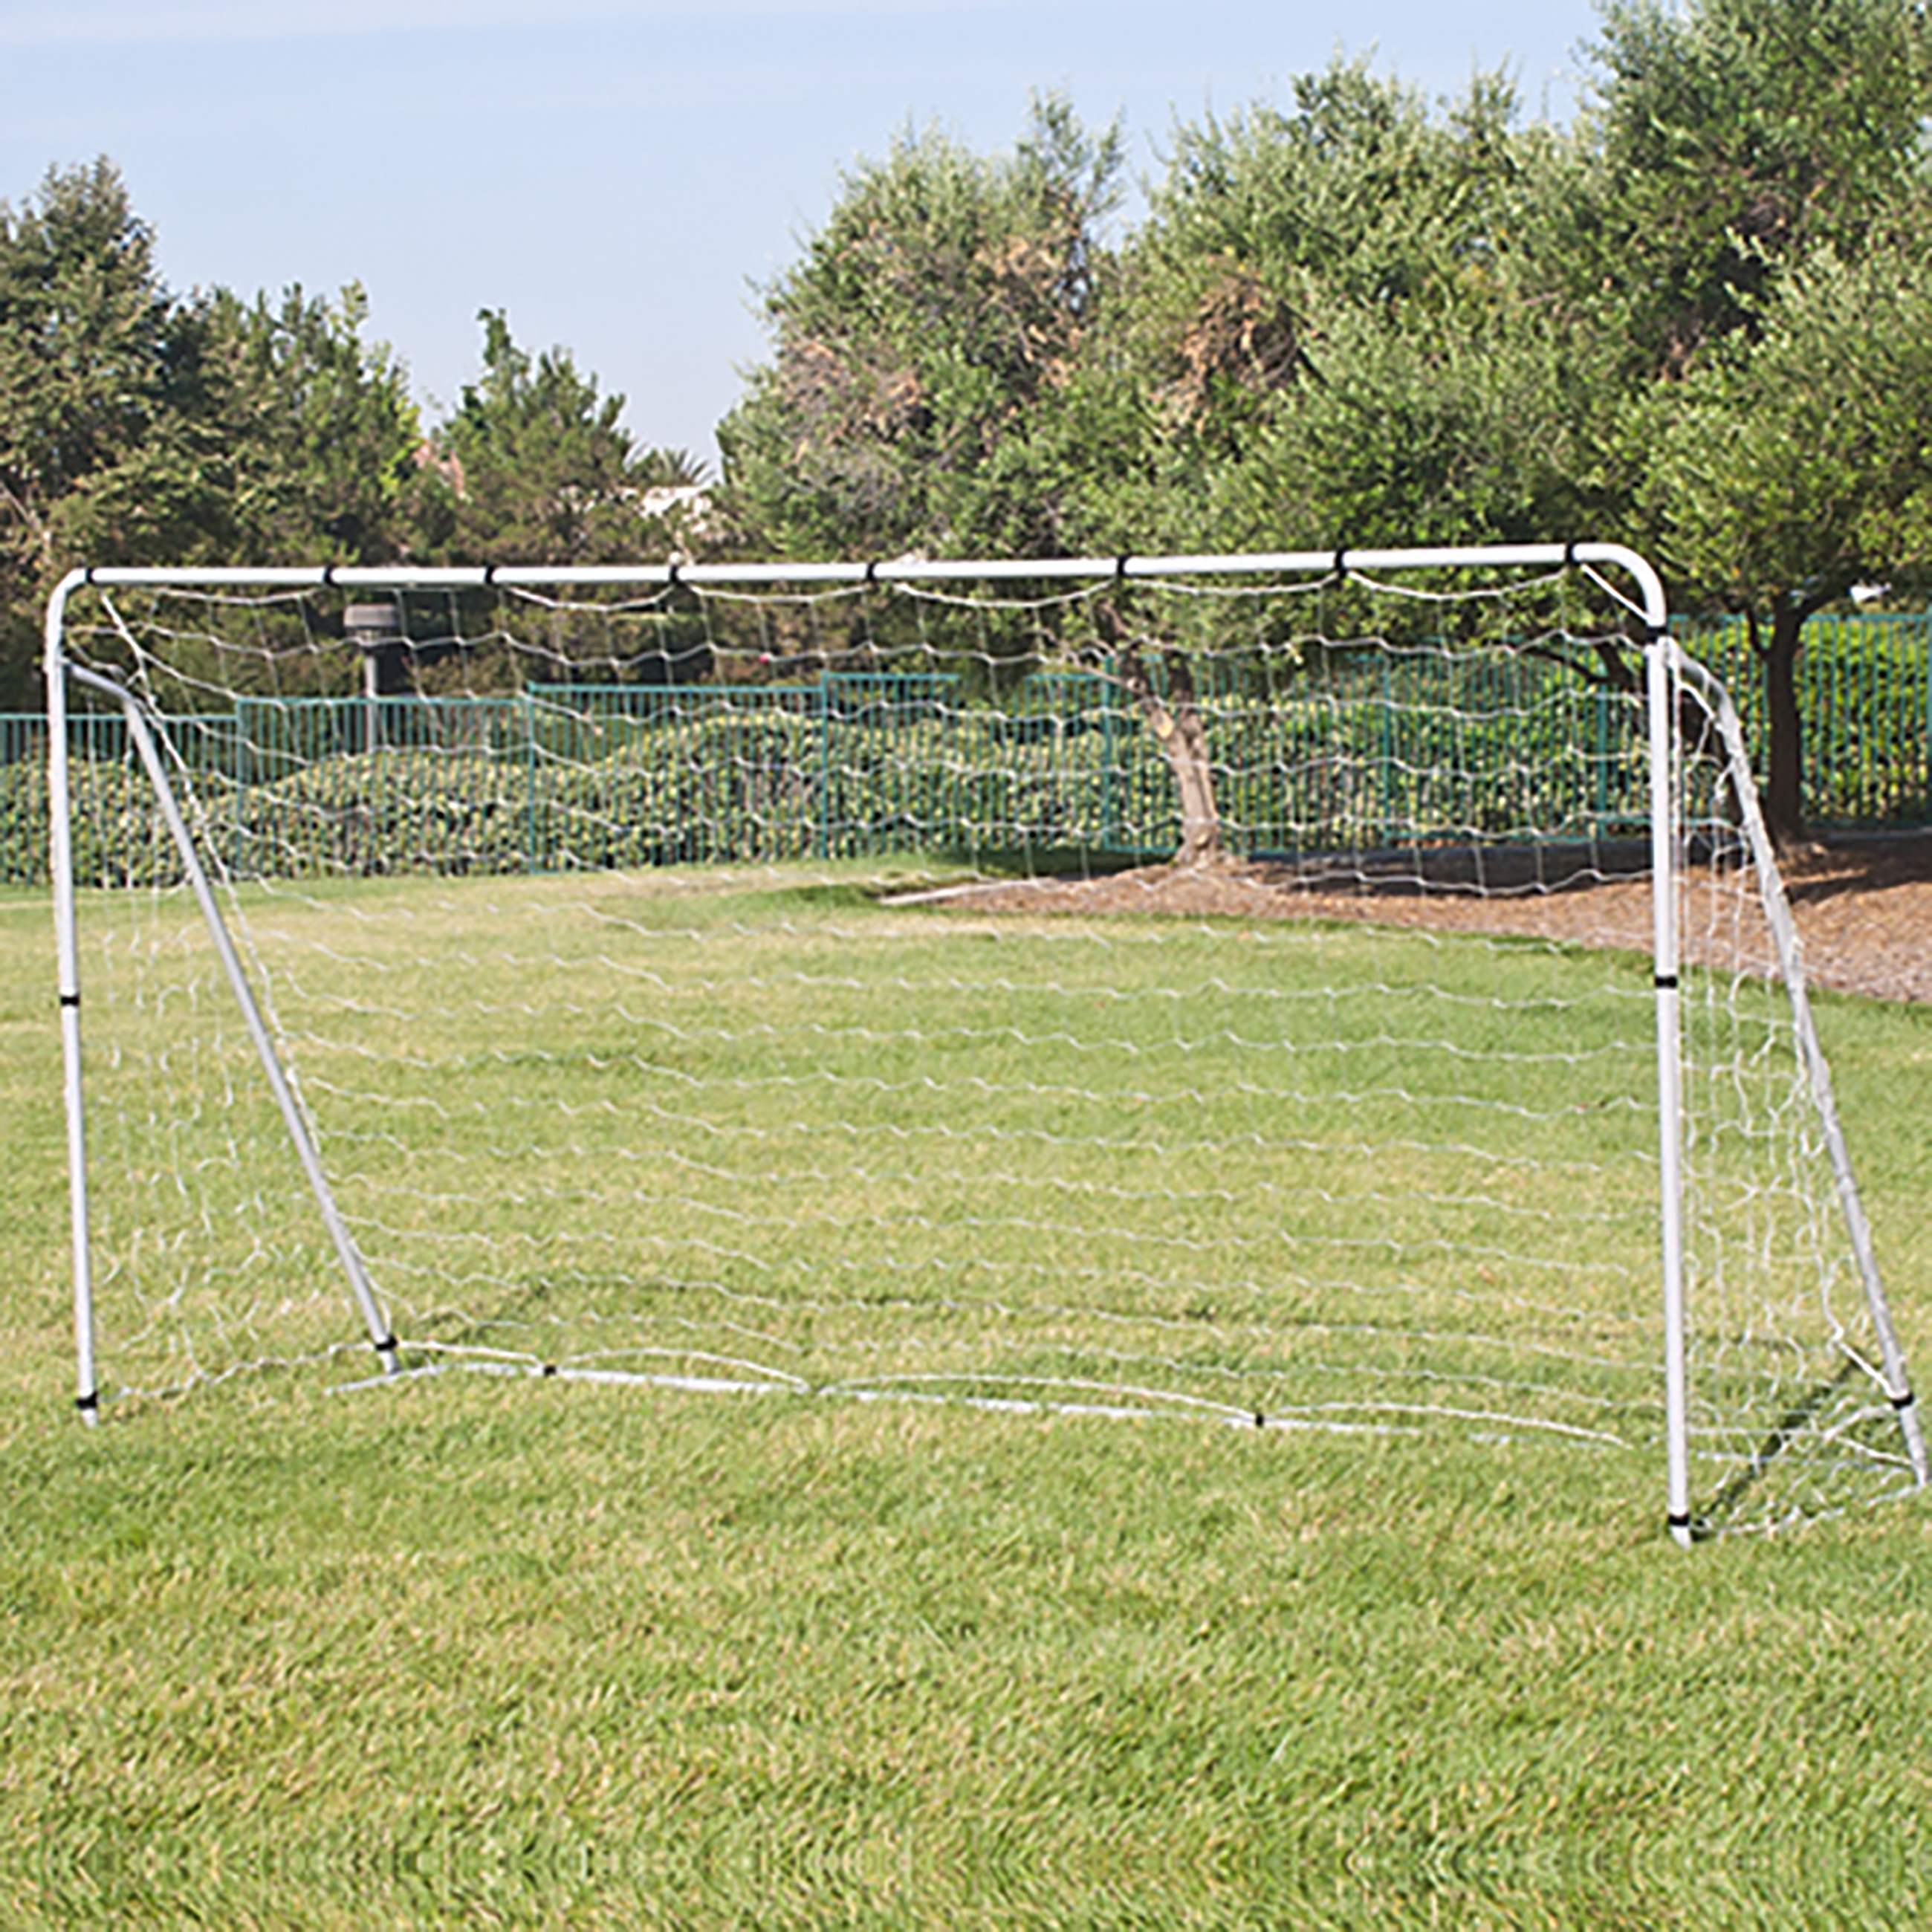 12' x 6' Soccer Goal With Net, Straps, Anchor Large Soccer Goal Sports by Best Choice Products